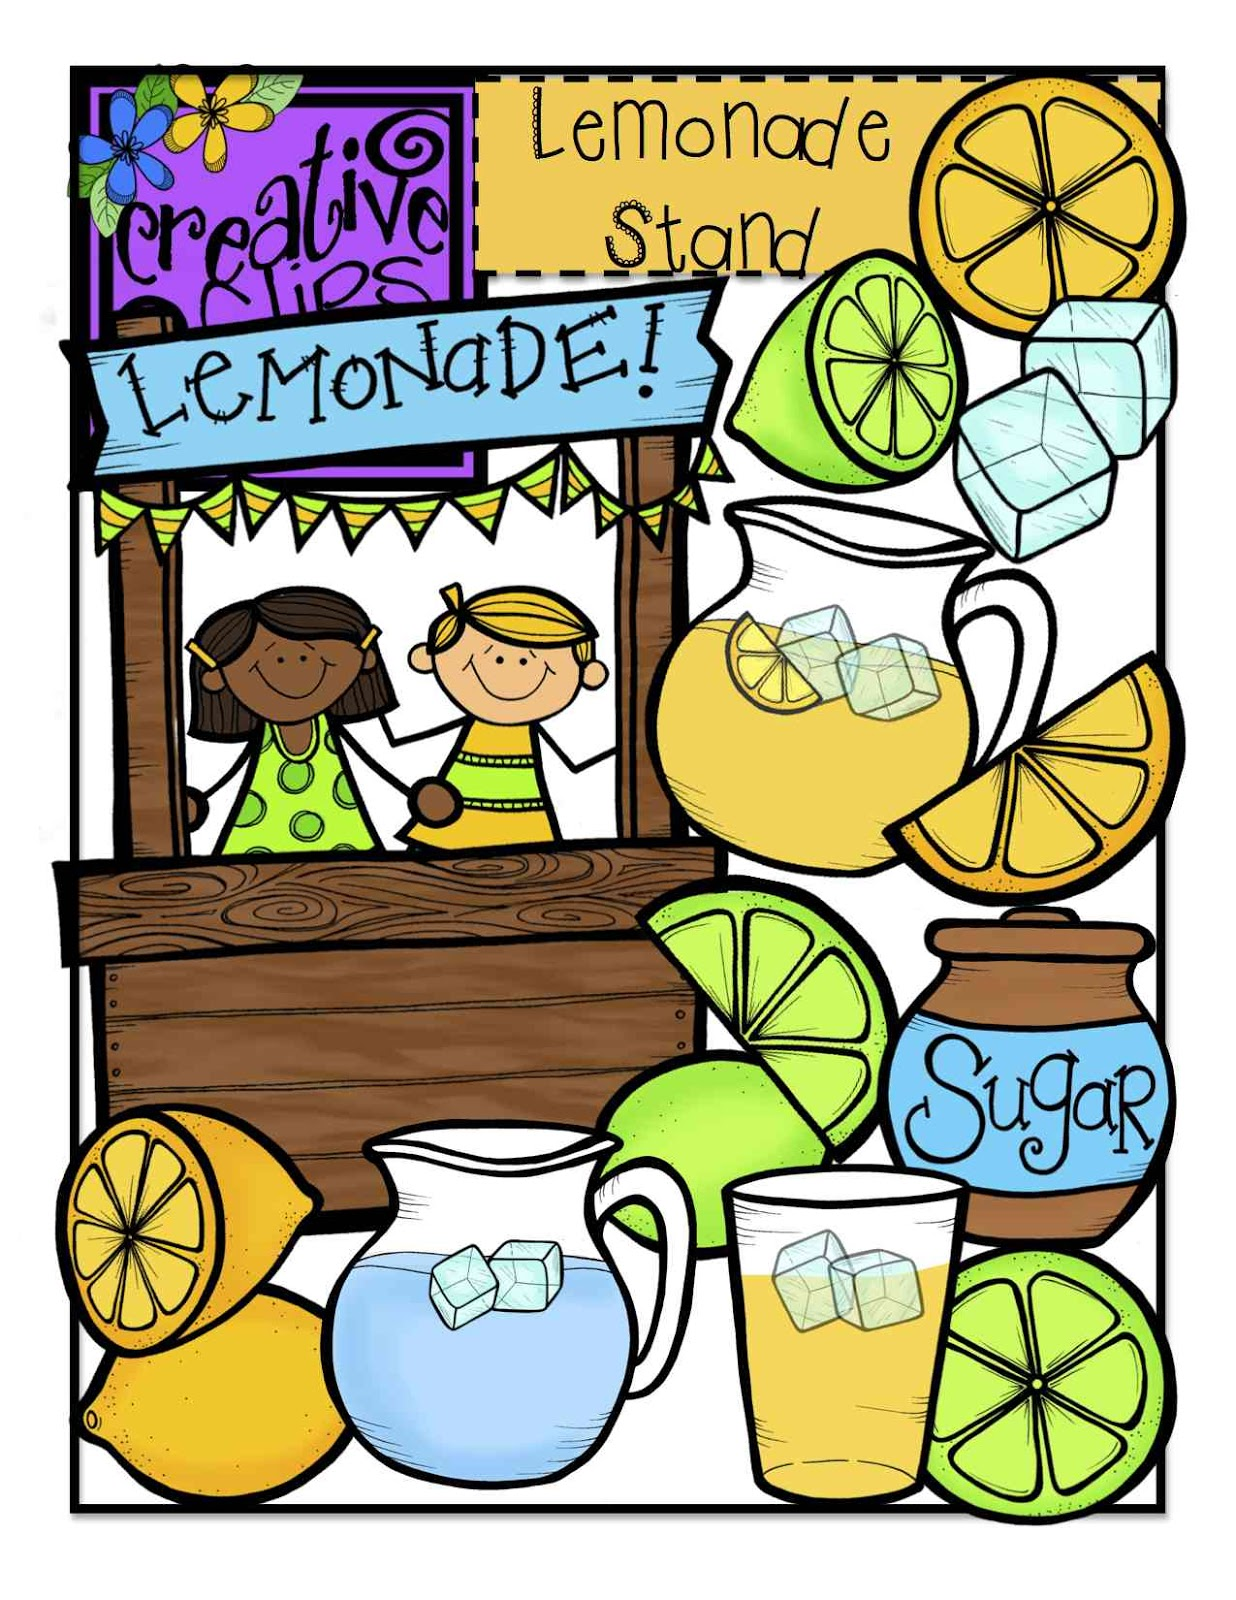 Lemonade stand clipart {Echo . All you have to do is u0026quot;likeu0026quot; .